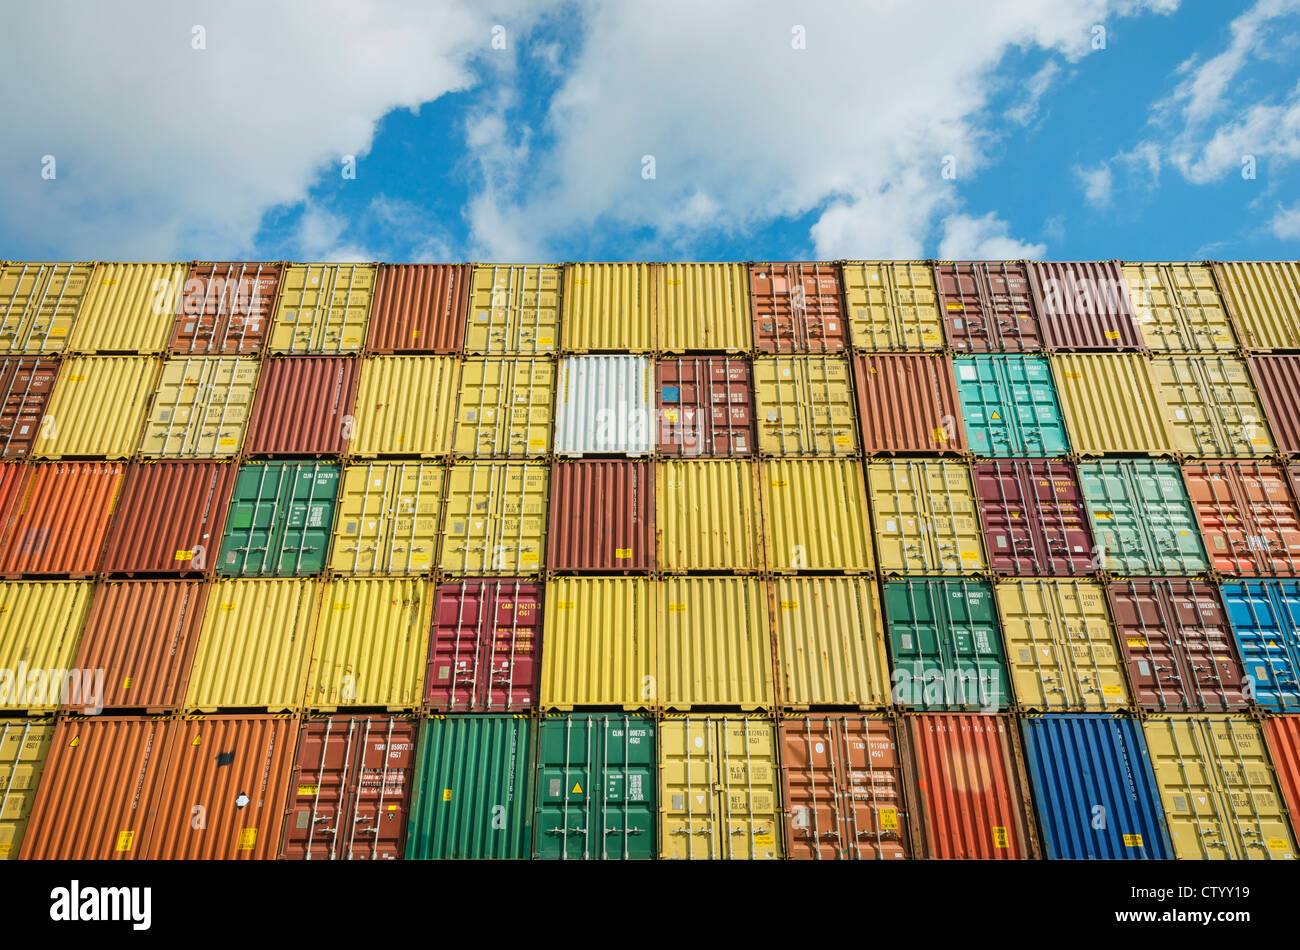 Shipping containers stacked together - Stock Image